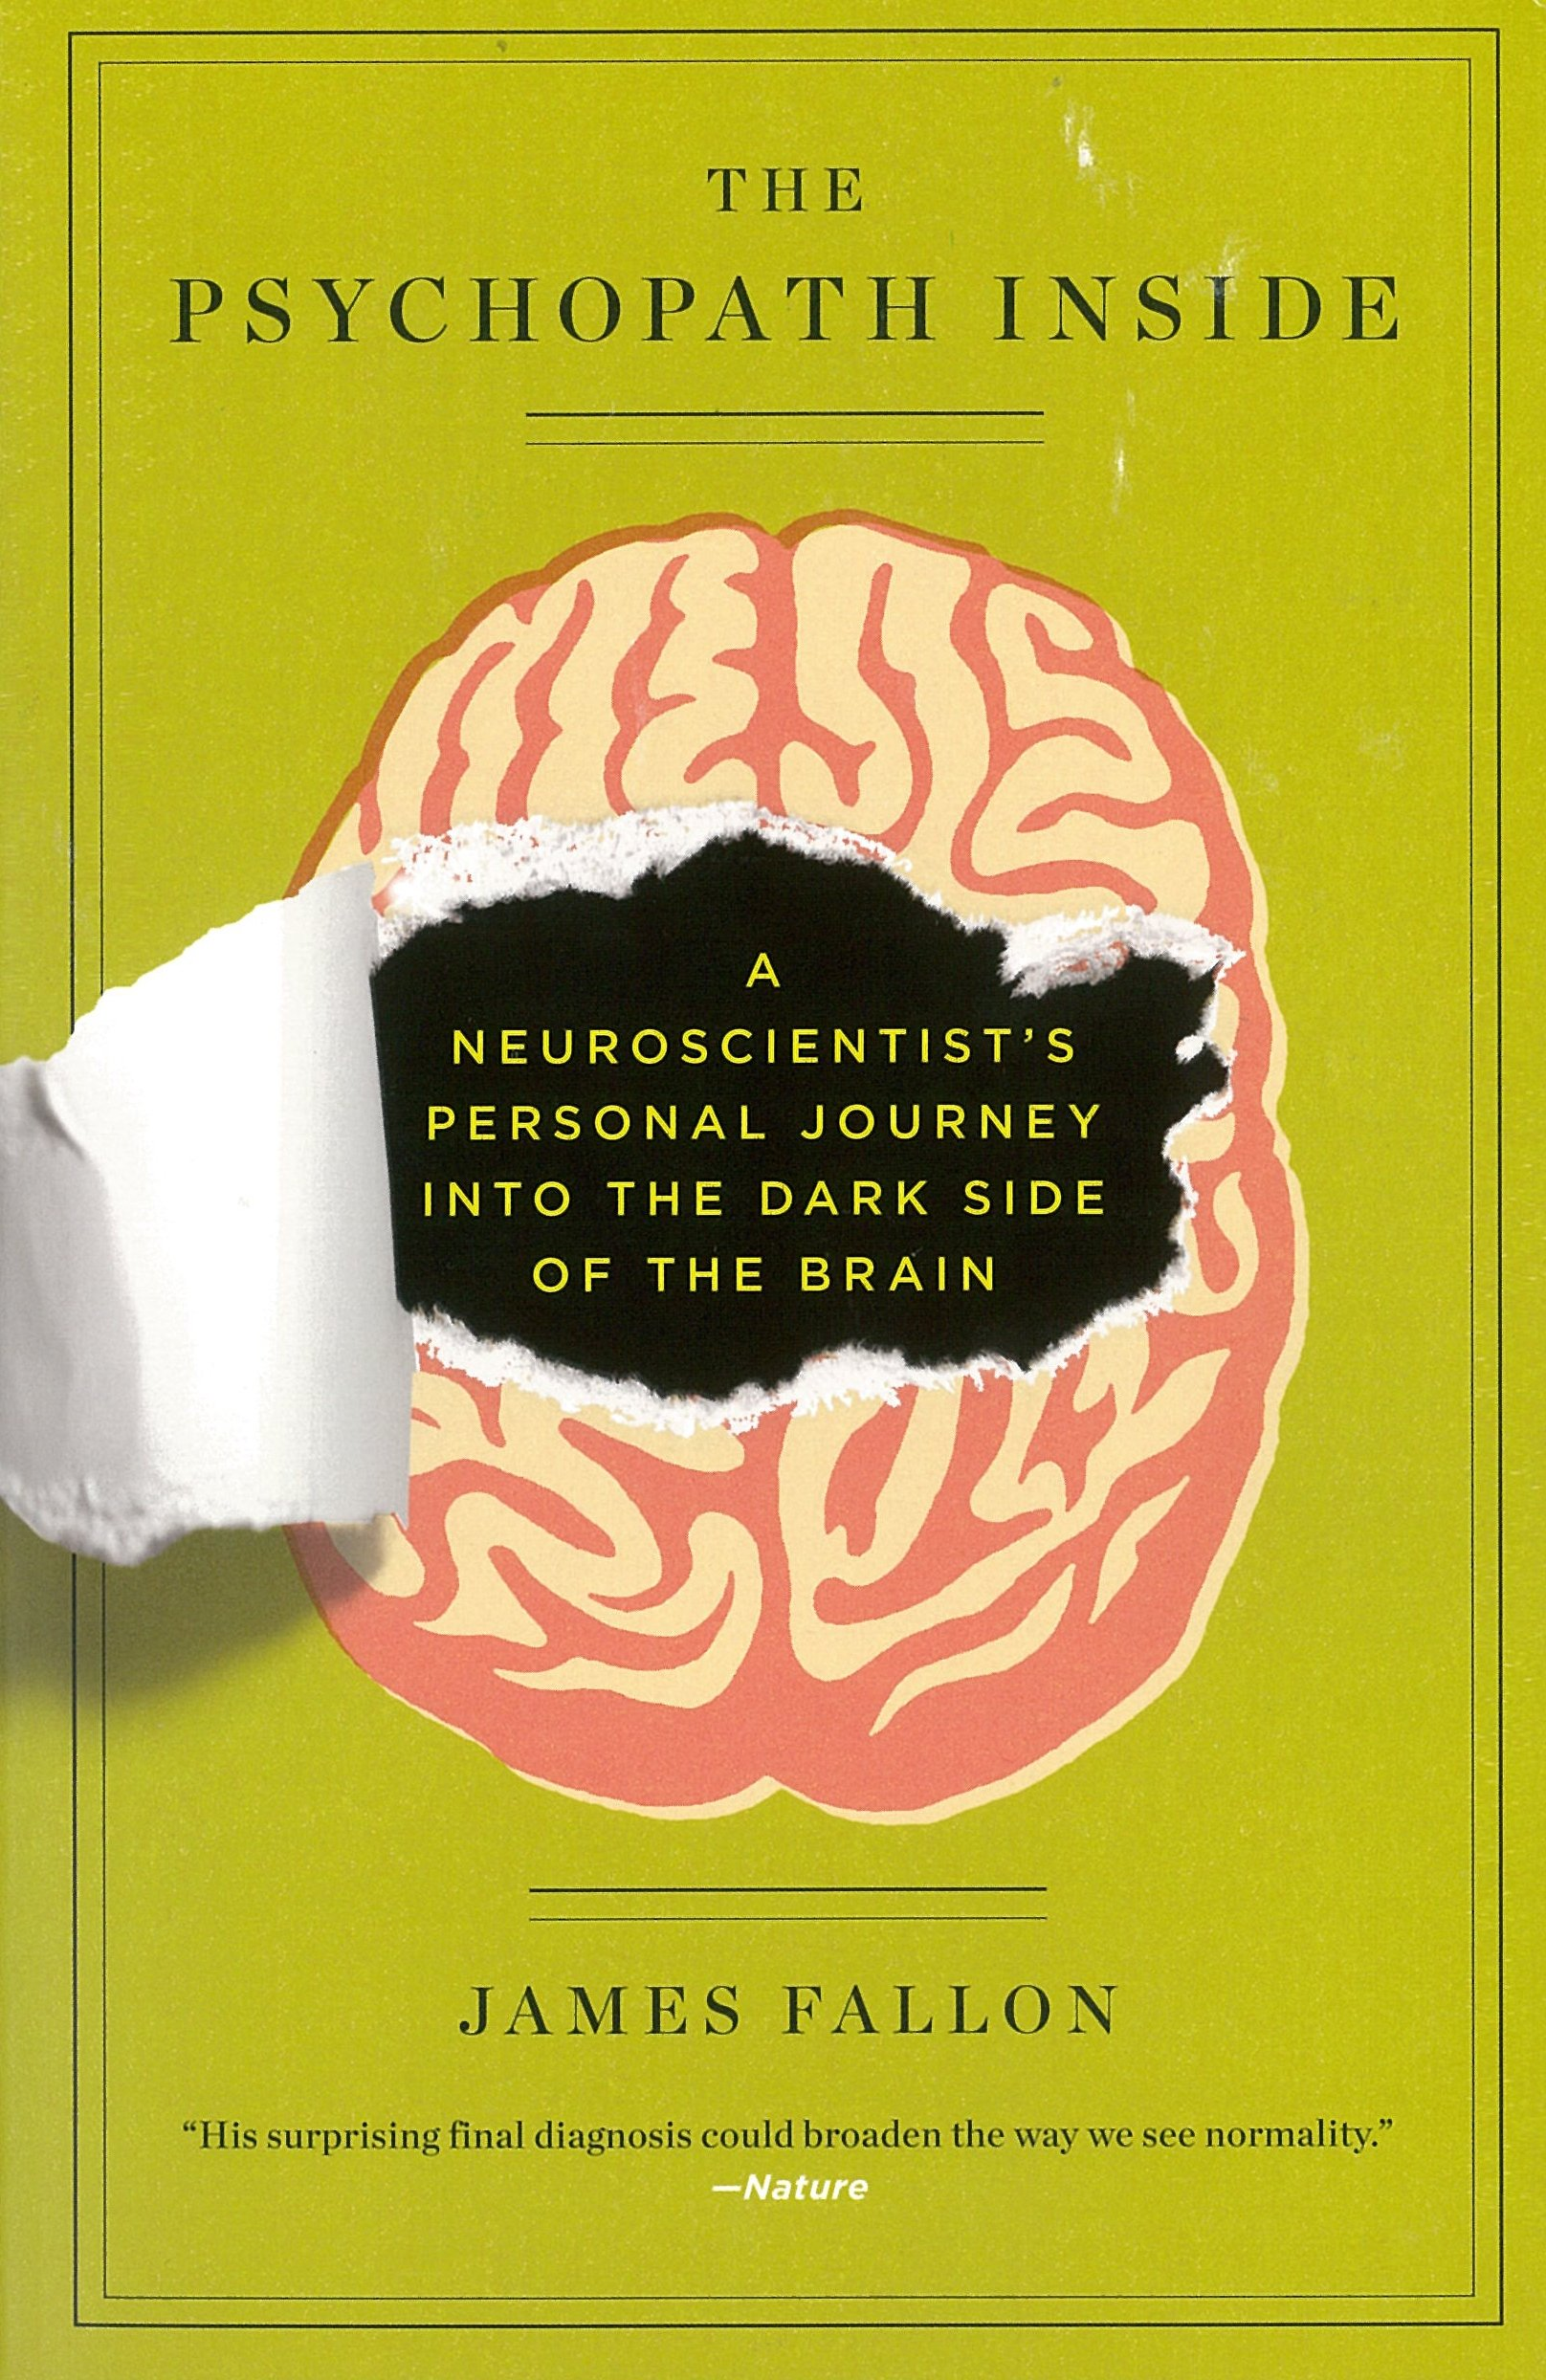 Psychopath Inside Neuroscientists Personal Journey product image